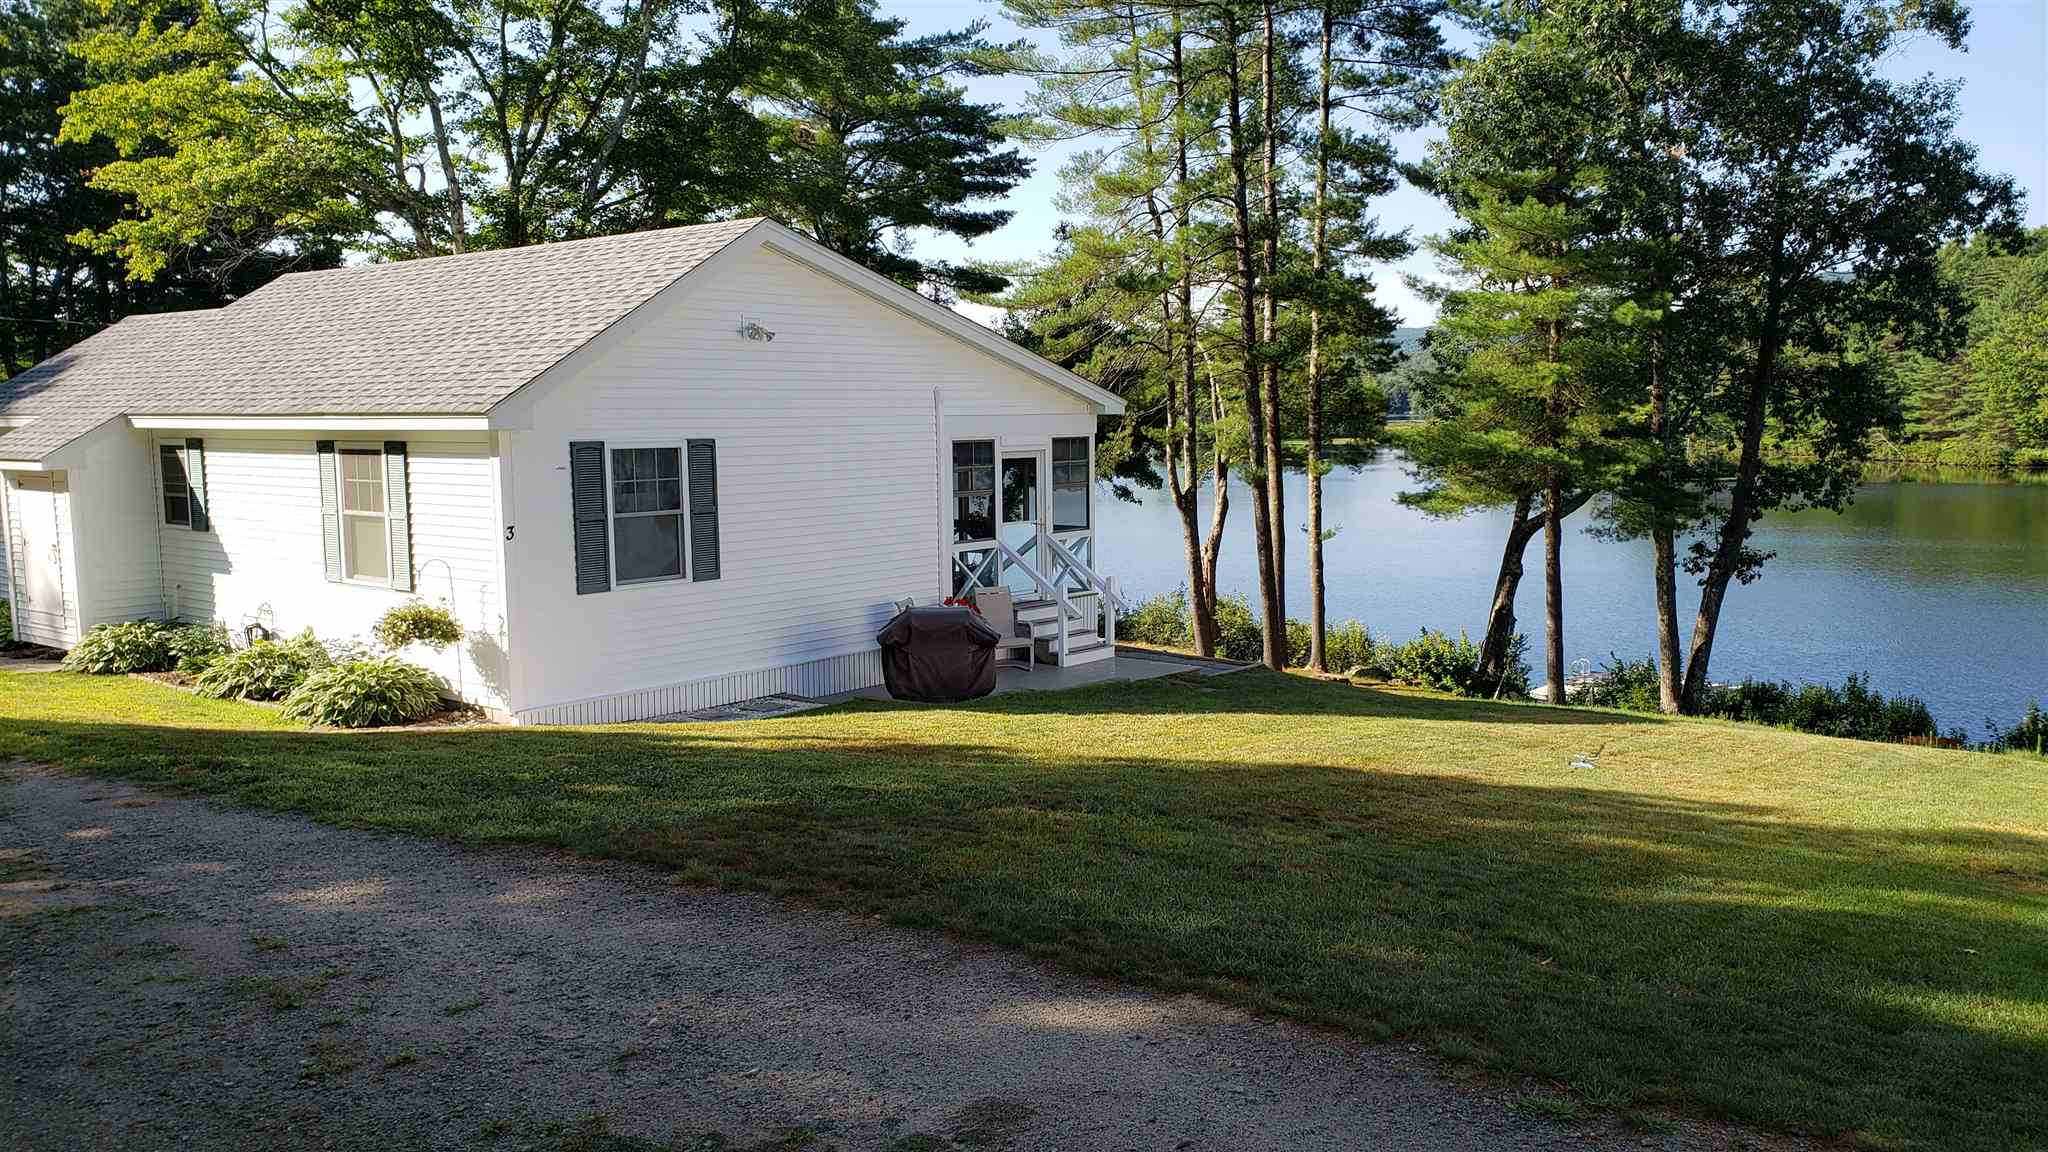 MLS 4796137: 51 Meredith Center Road, Meredith NH